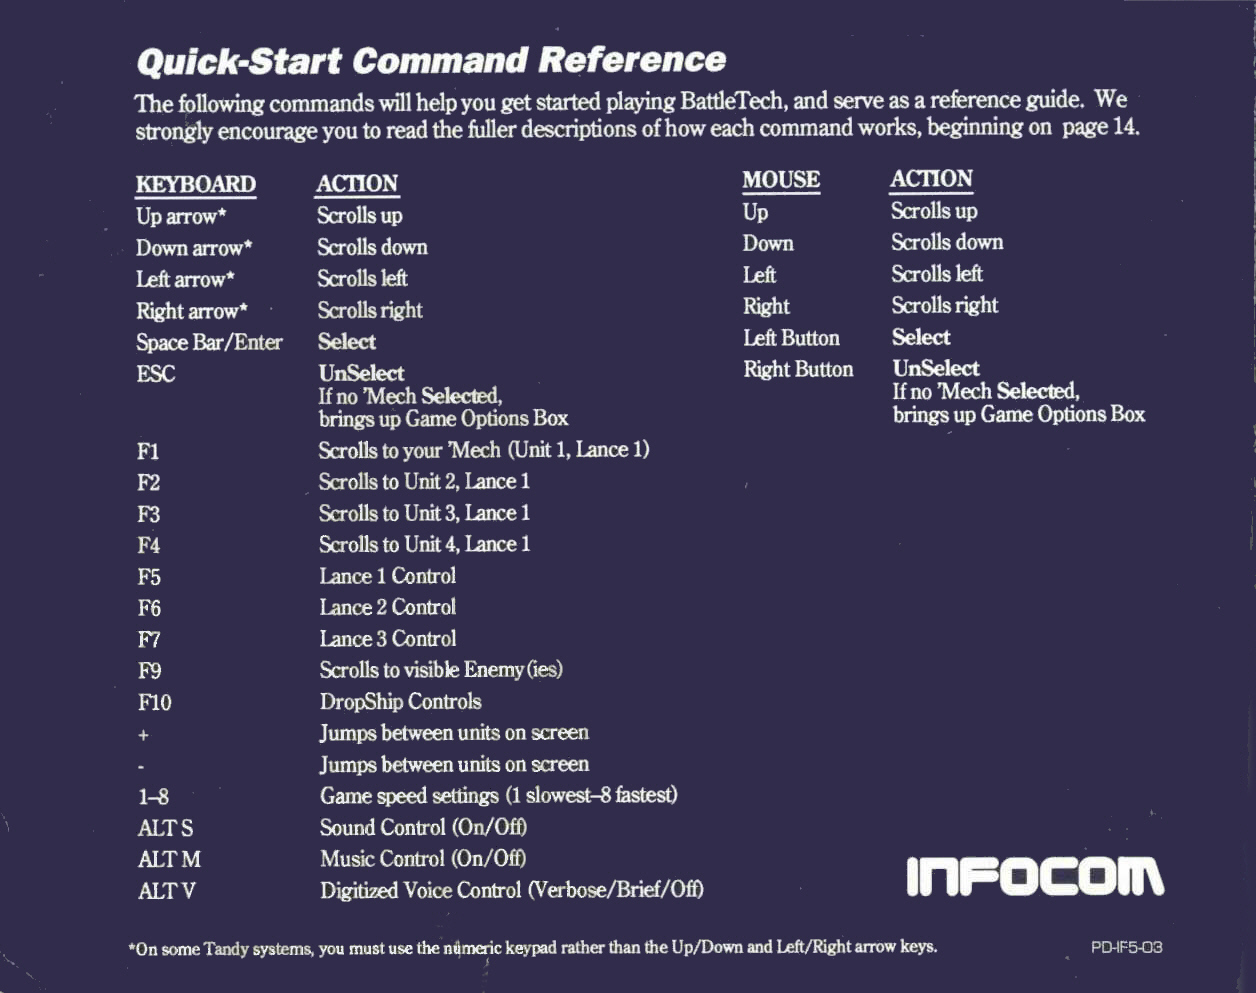 Command Reference